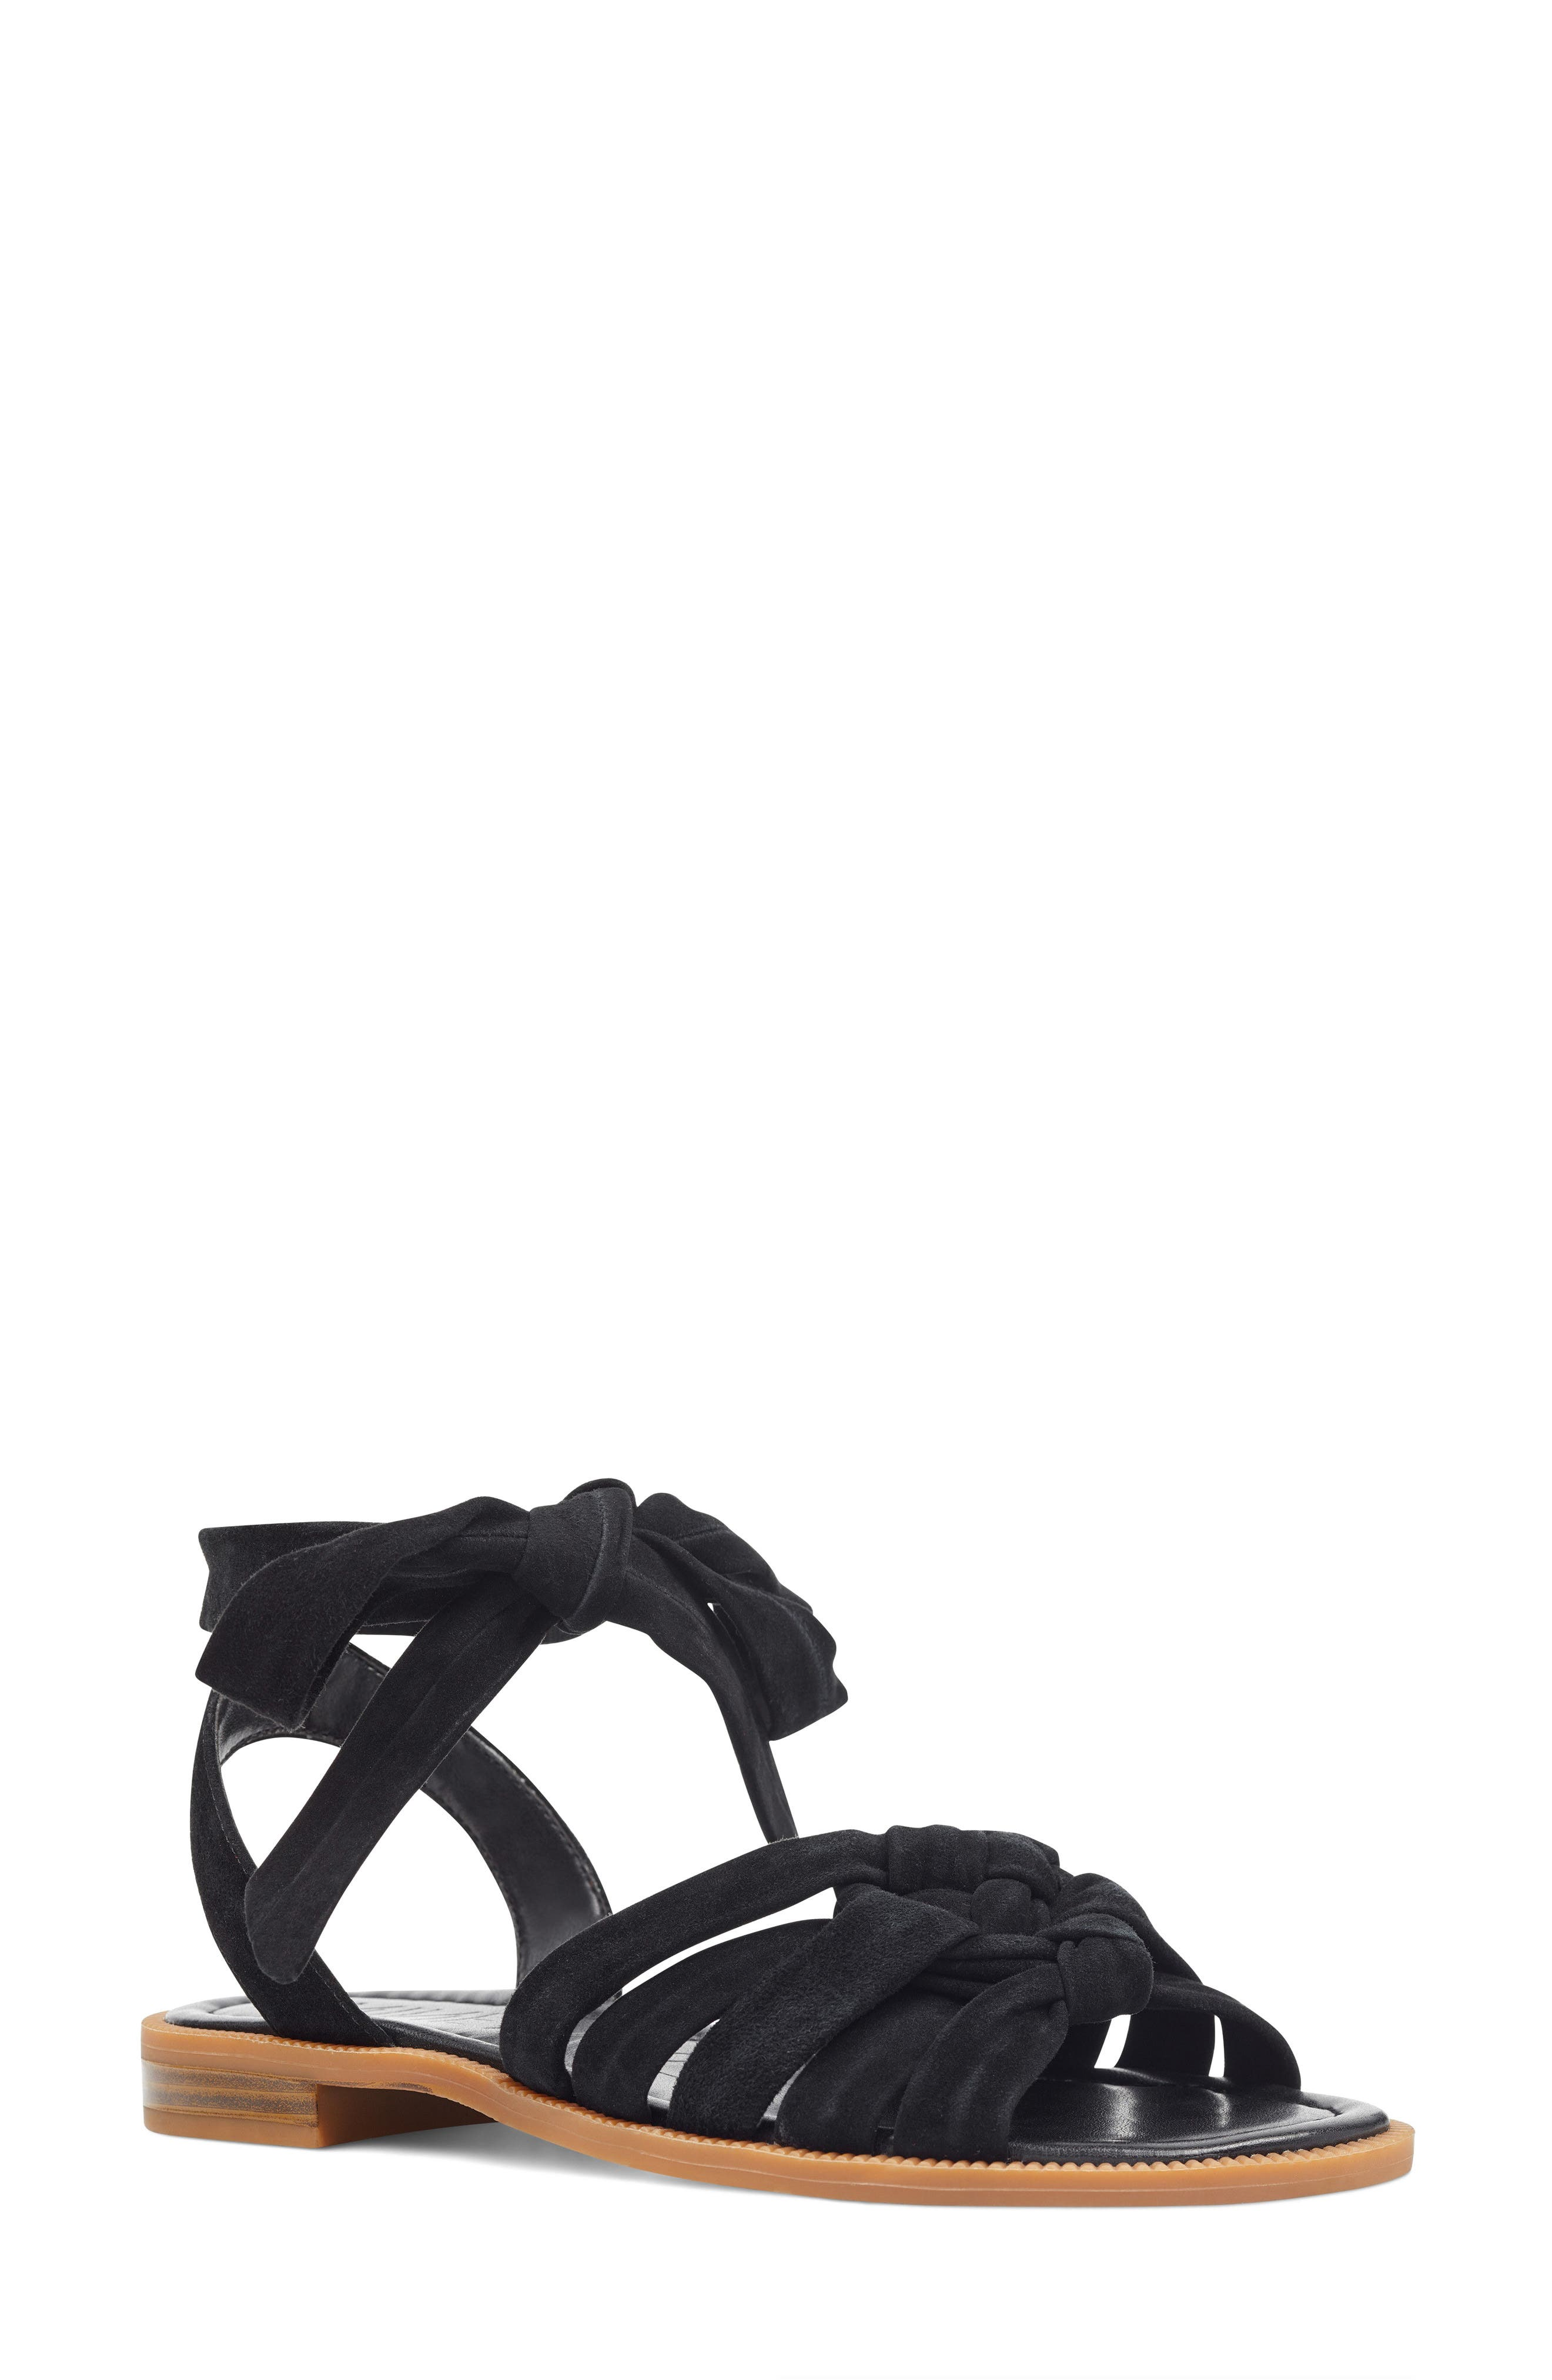 Xameera Knotted Sandal,                         Main,                         color, 002